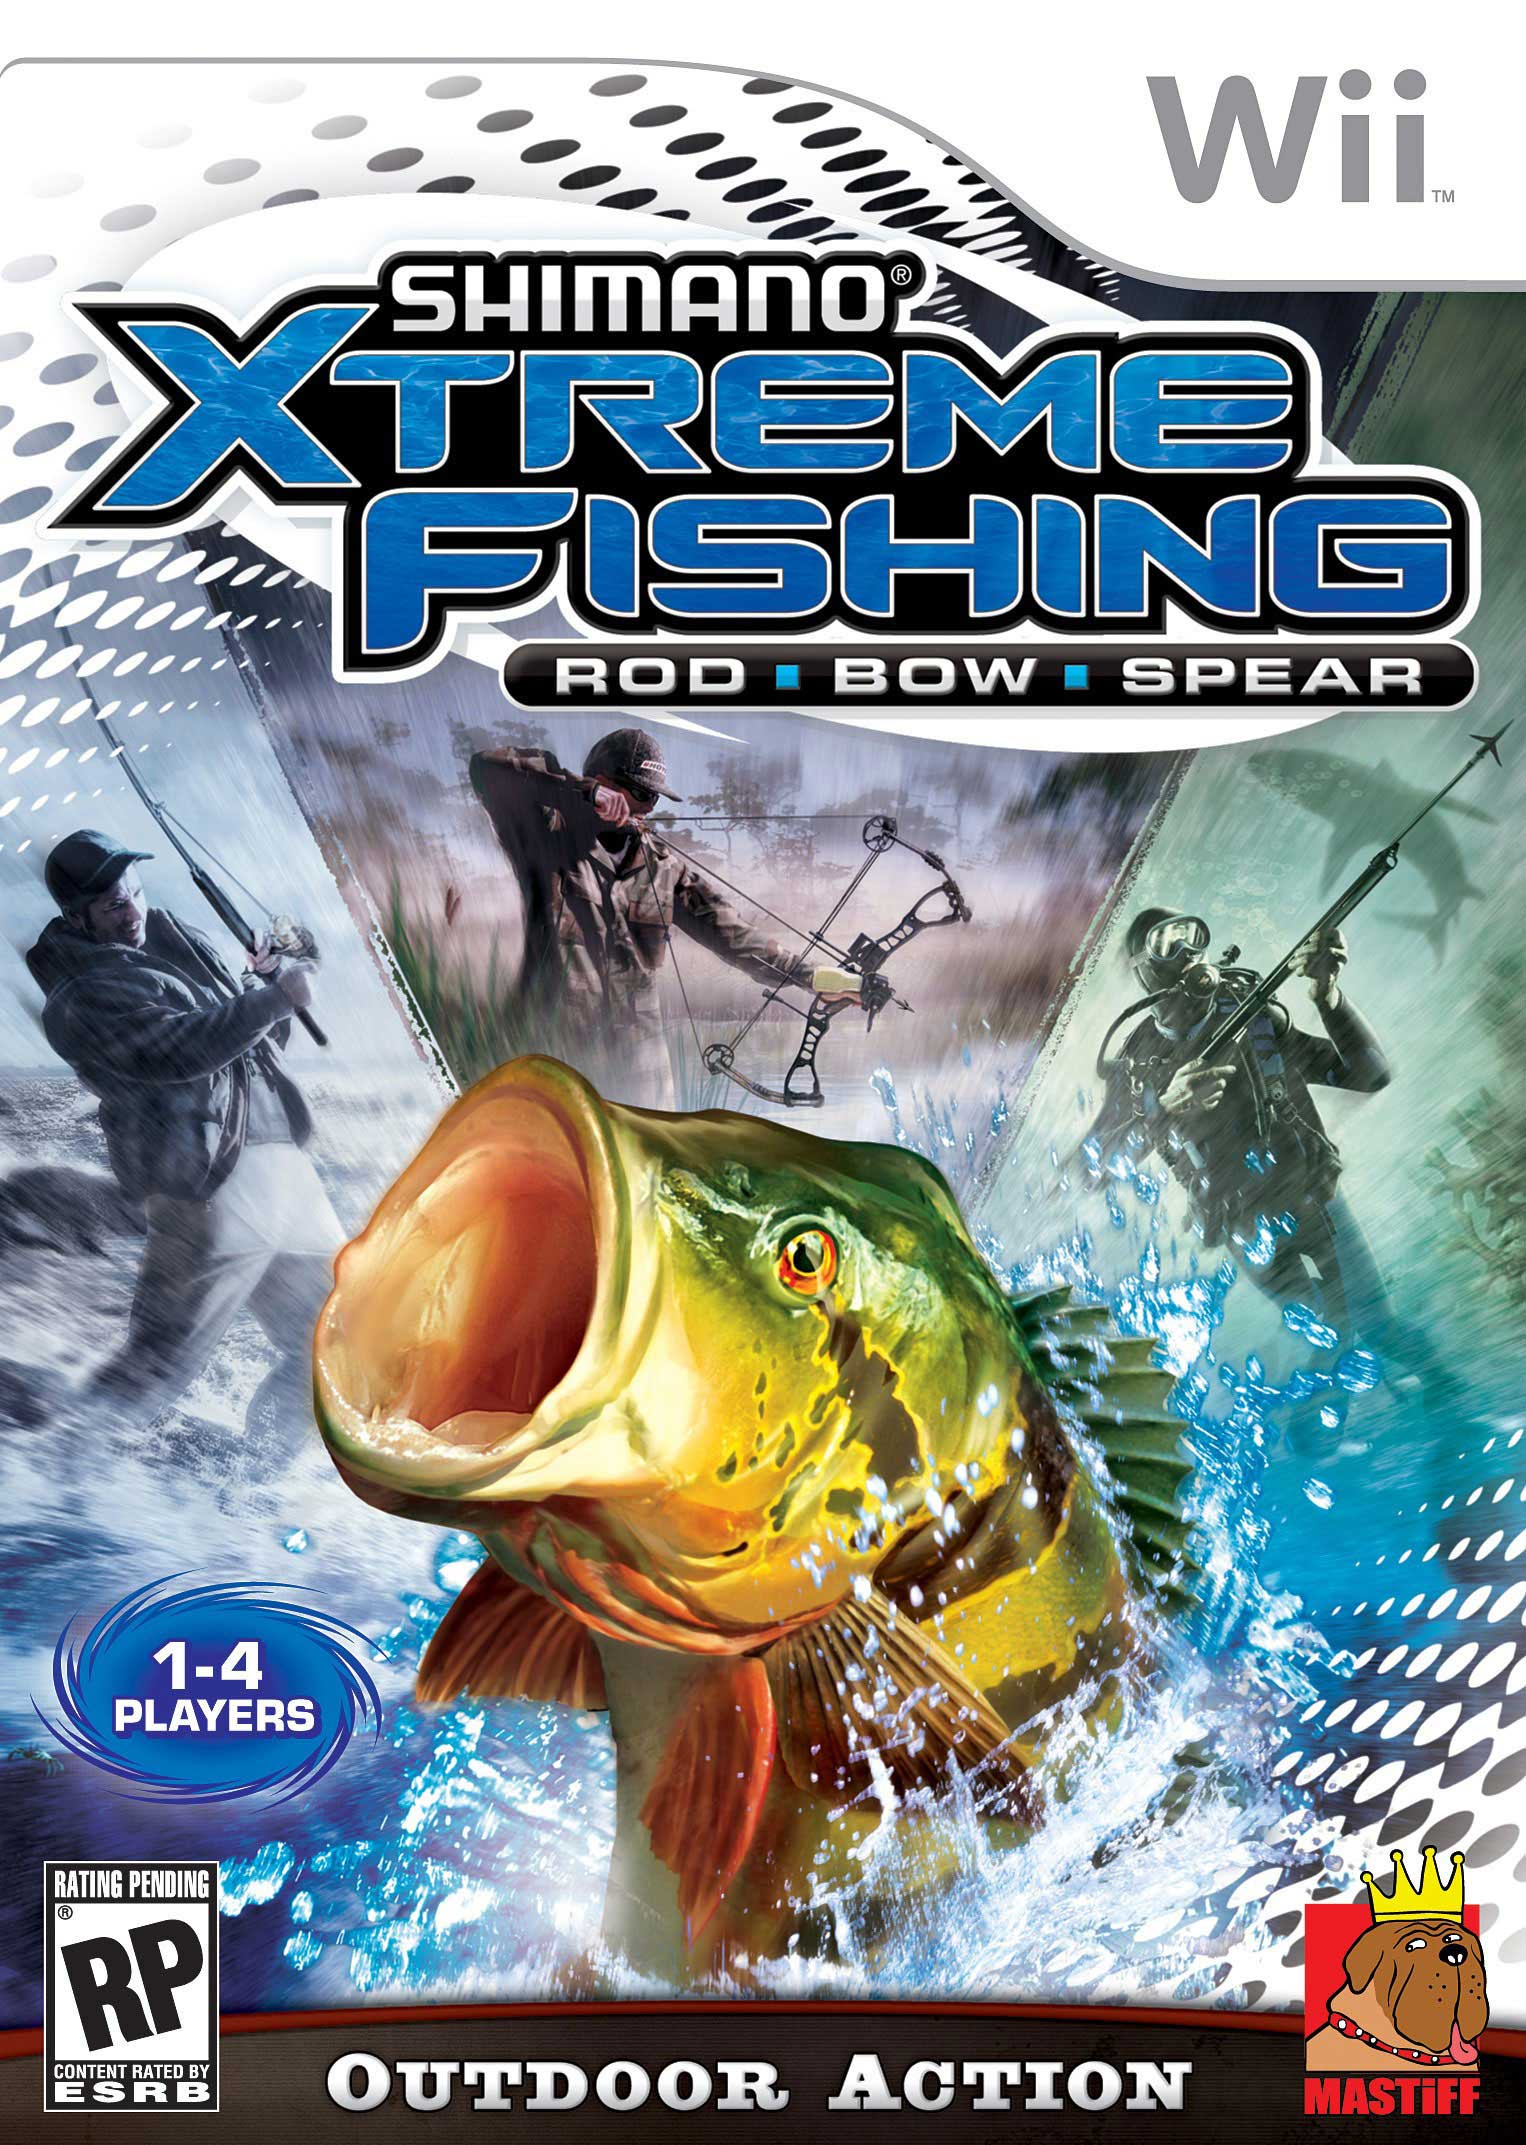 Shimano xtreme fishing nintendo wii game for Wii fishing games